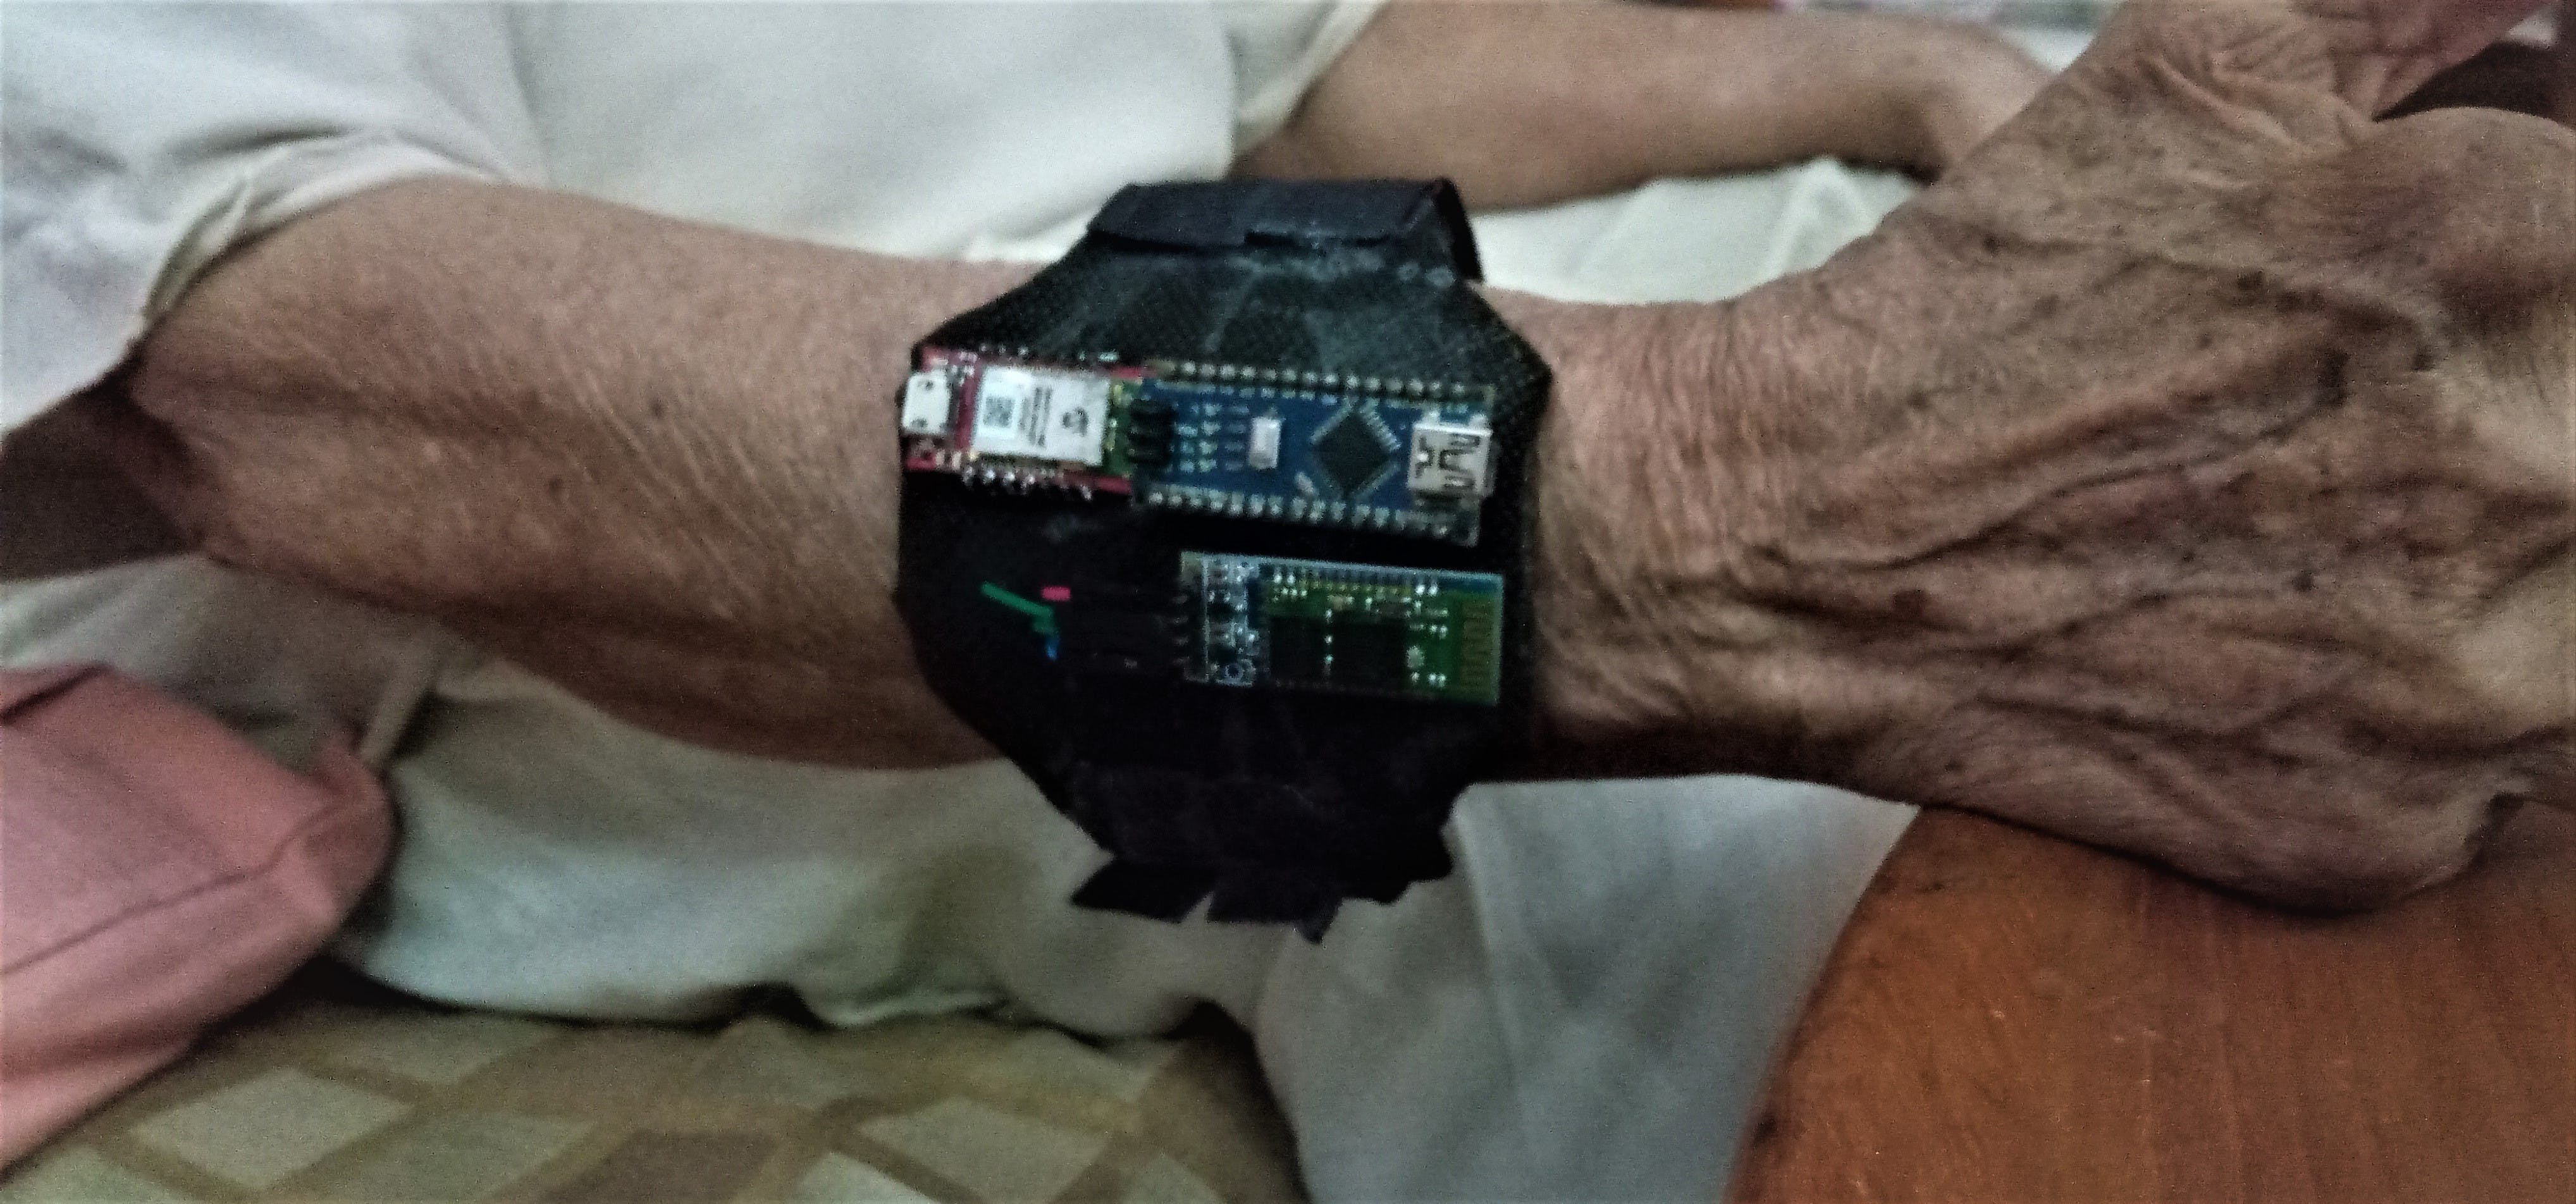 Finally we proudly put the Health band around my grandma's hand, she found it very comfortable : )